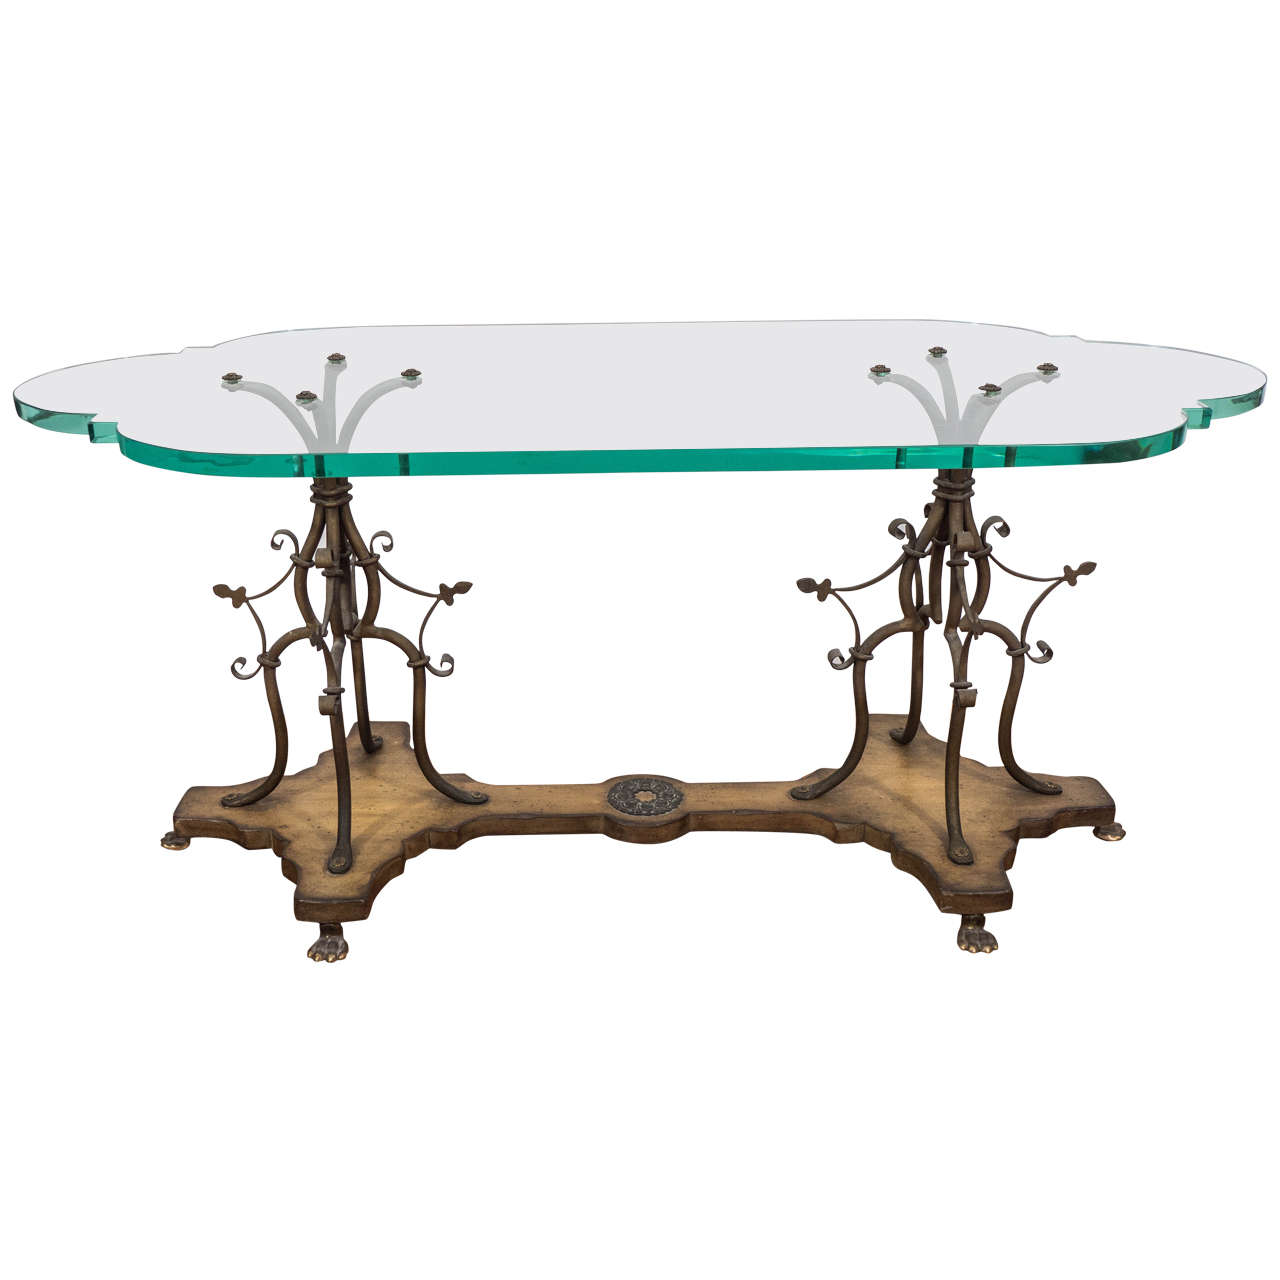 Midcentury Sculptural Gilt Wrought Iron And Wood Coffee Table With Glass Top At 1stdibs